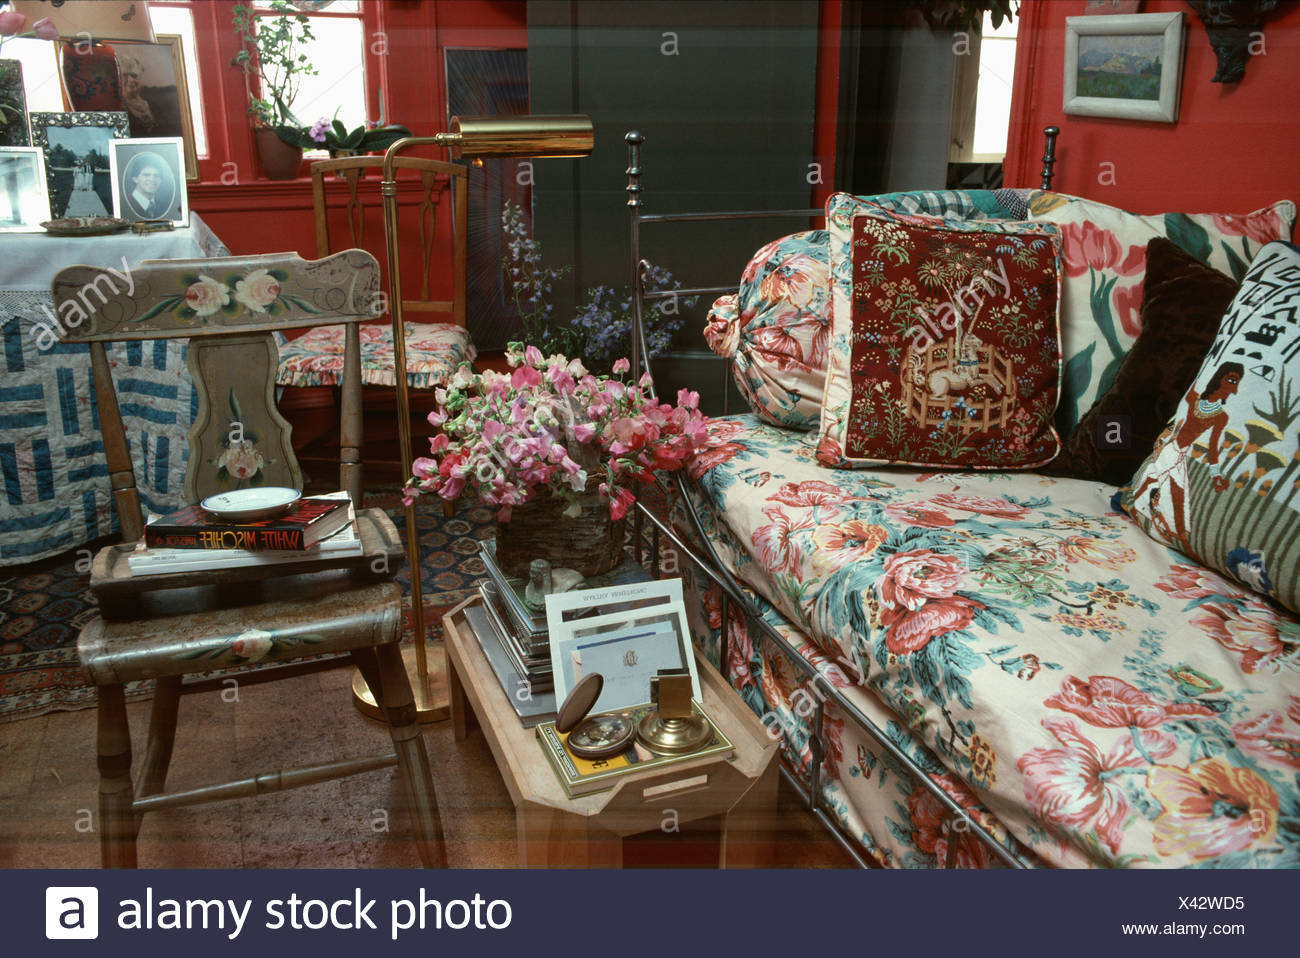 Fine Cushions On Floral Sofa Beside Painted Antique Wooden Chair Gmtry Best Dining Table And Chair Ideas Images Gmtryco